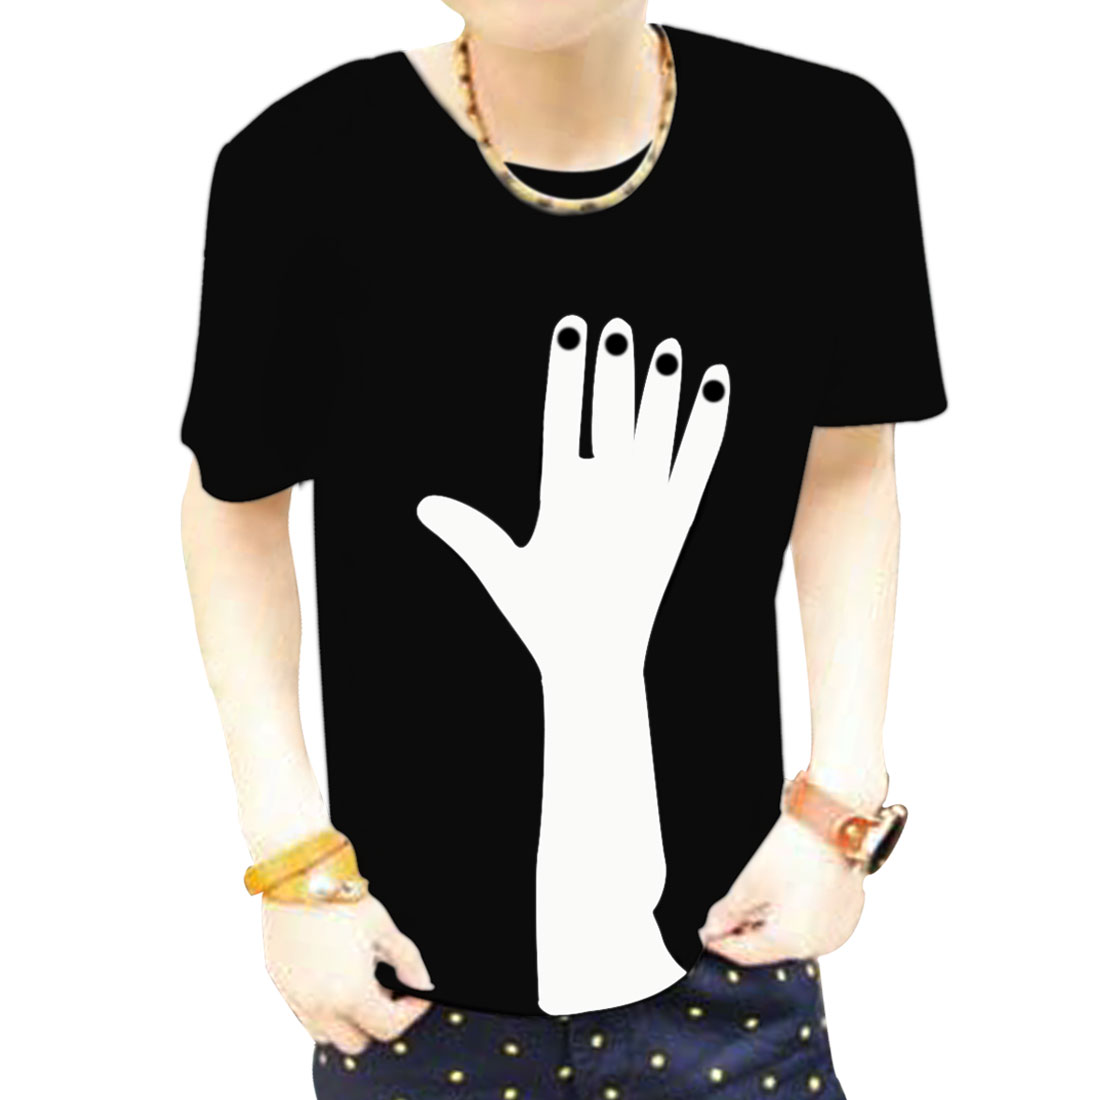 Men Summer New Style Fashional Buttons Decor T-Shirt Blouse Black M